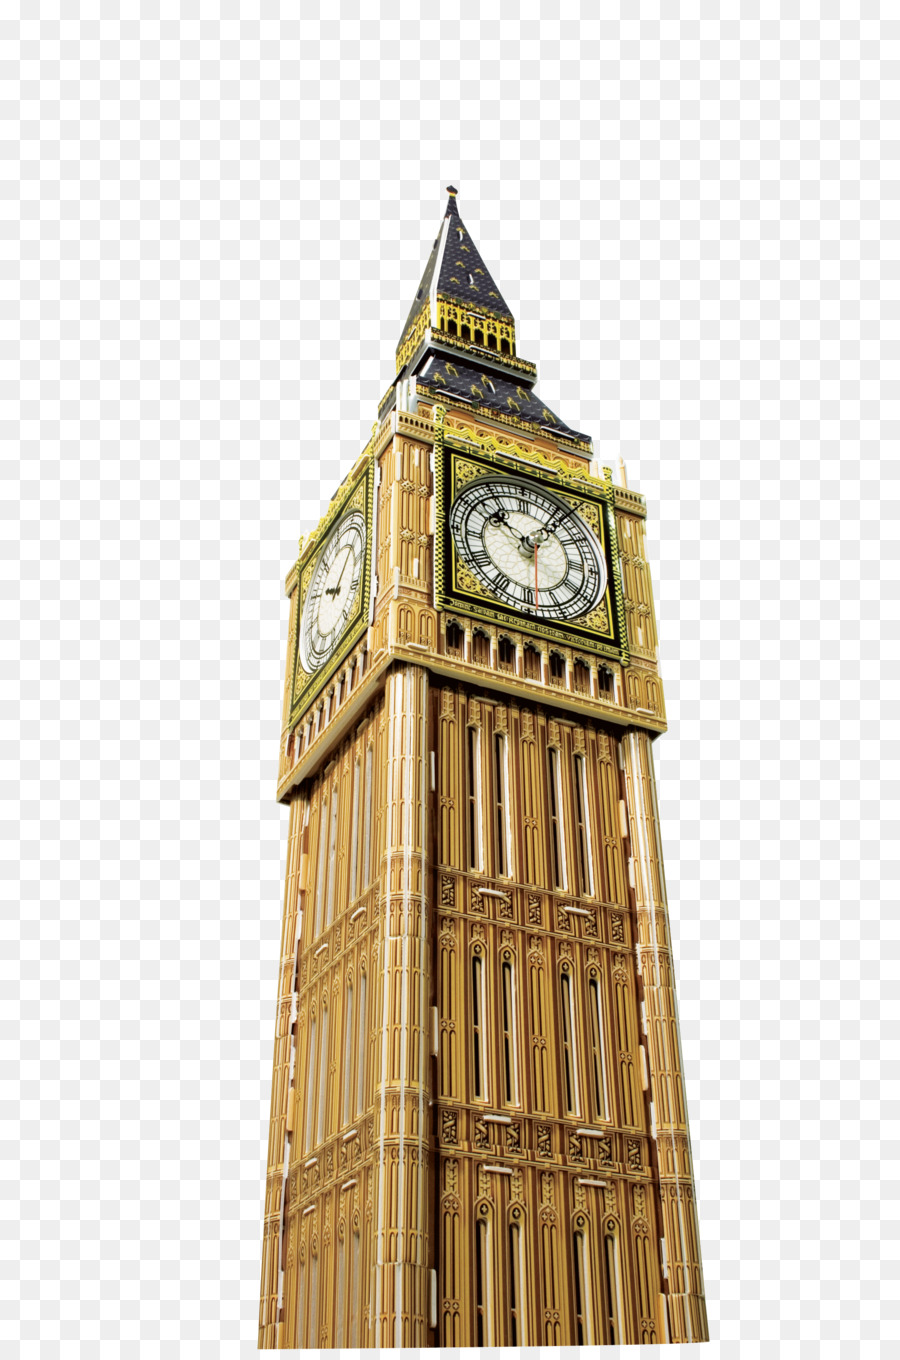 London Clock Tower Png Amp Free London Clock Tower Png